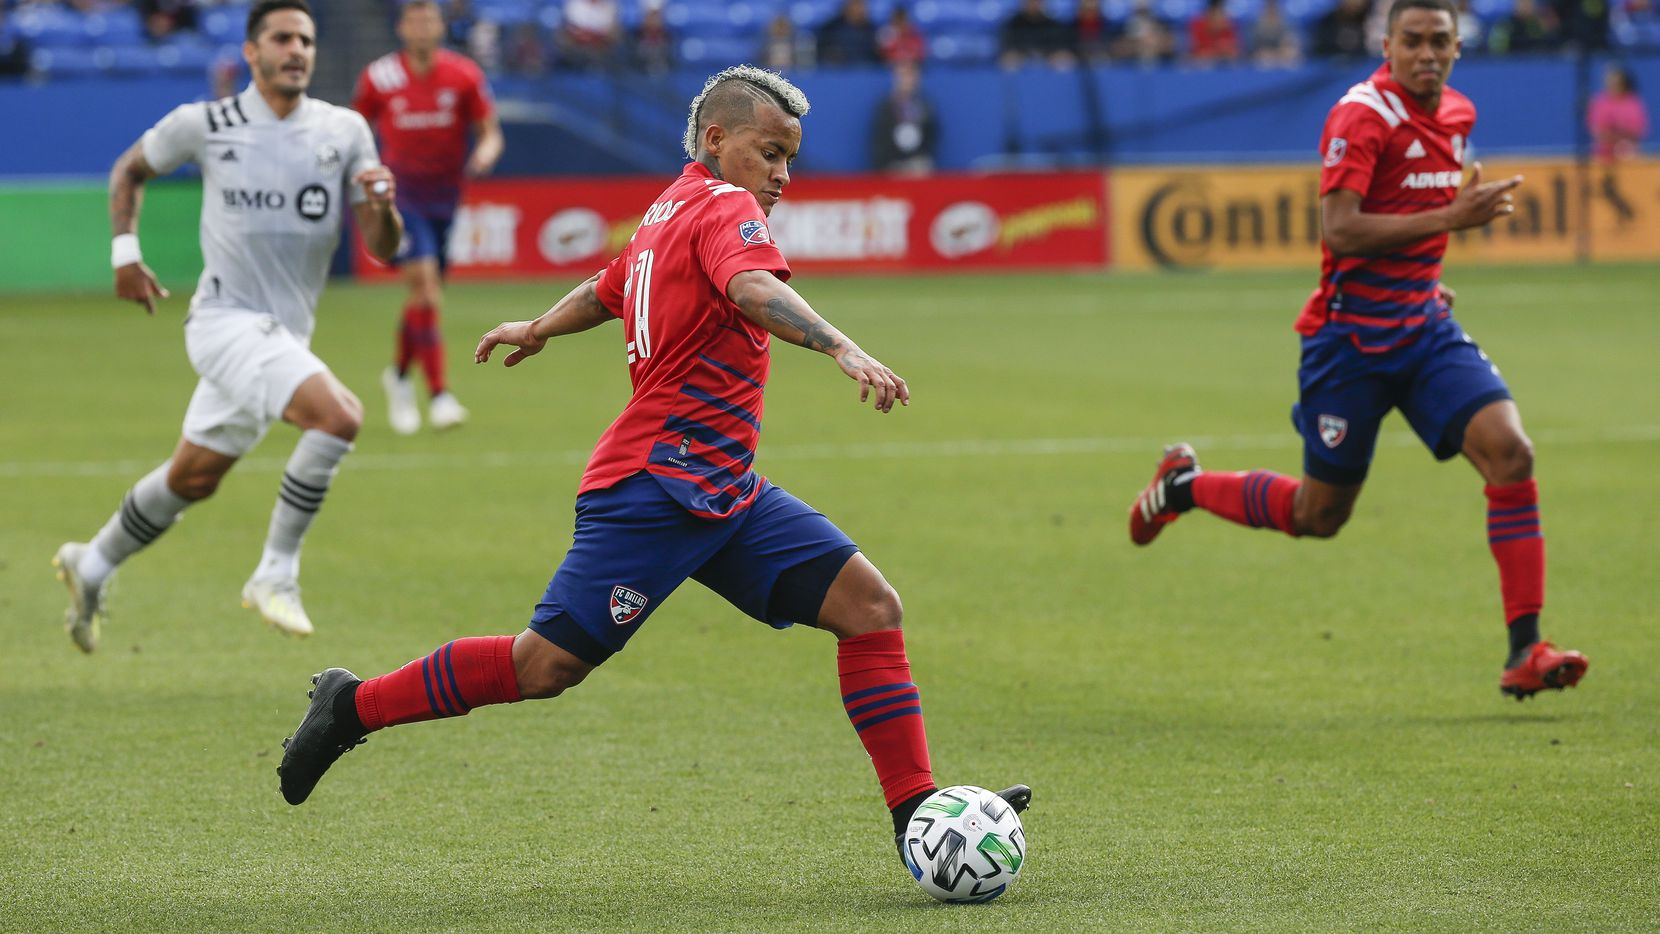 FC Dallas midfielder Michael Barrios (21) makes a run during the first half of an MLS matchup between FC Dallas and Montreal Impact on Saturday, March 7, 2020 at Toyota Stadium in Frisco, Texas.